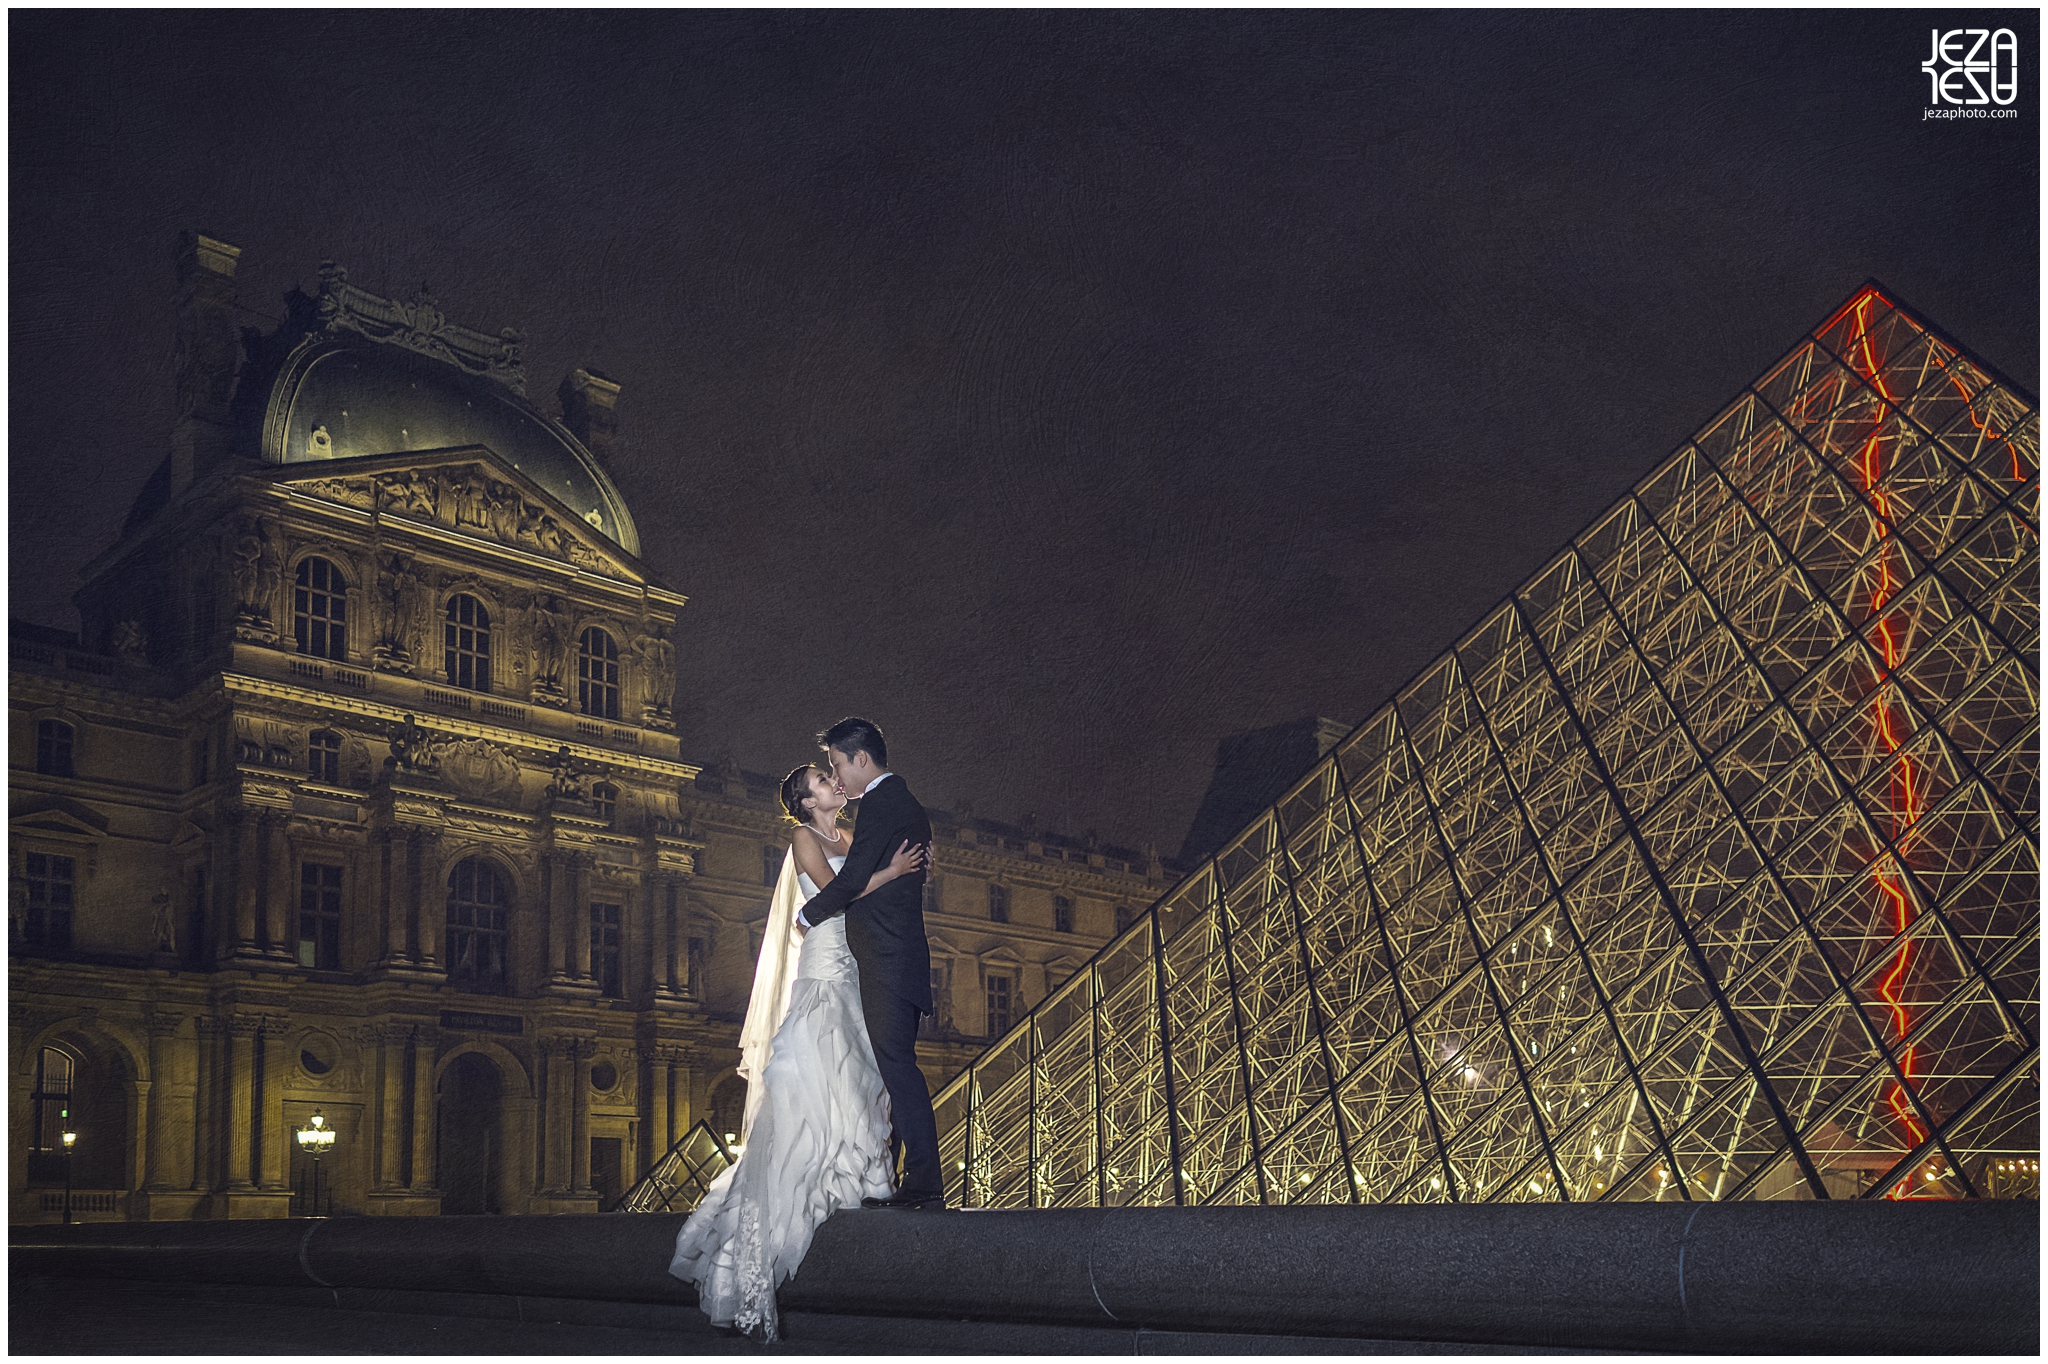 jeza Paris louvre pre-wedding photo